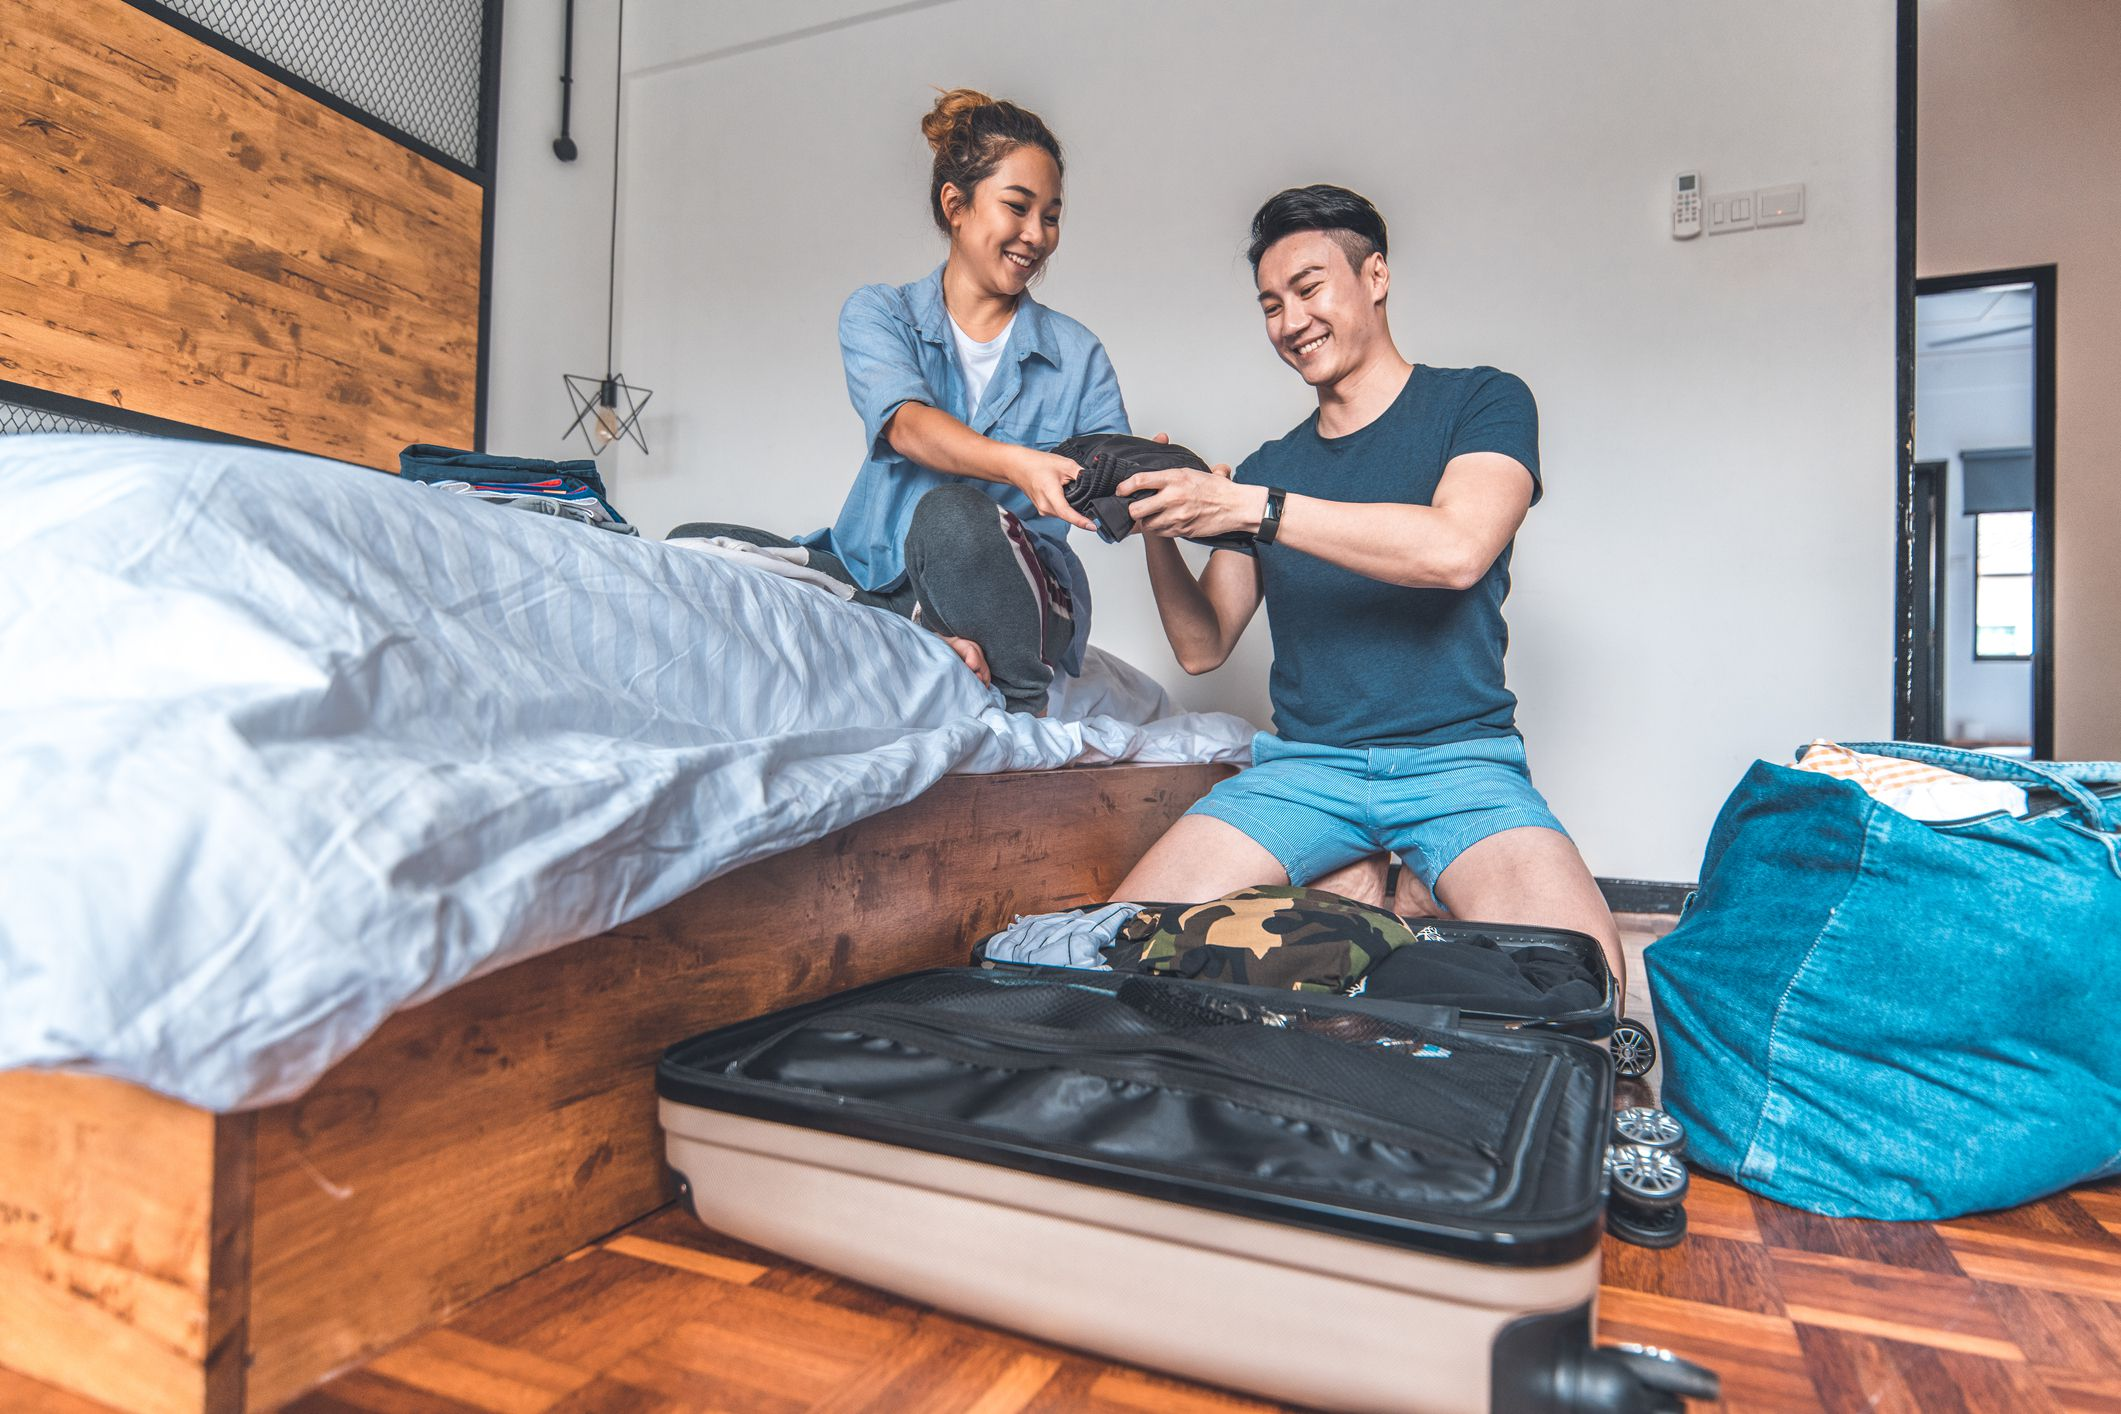 a8bc554ca7 The 8 Best Packing Cubes of 2019